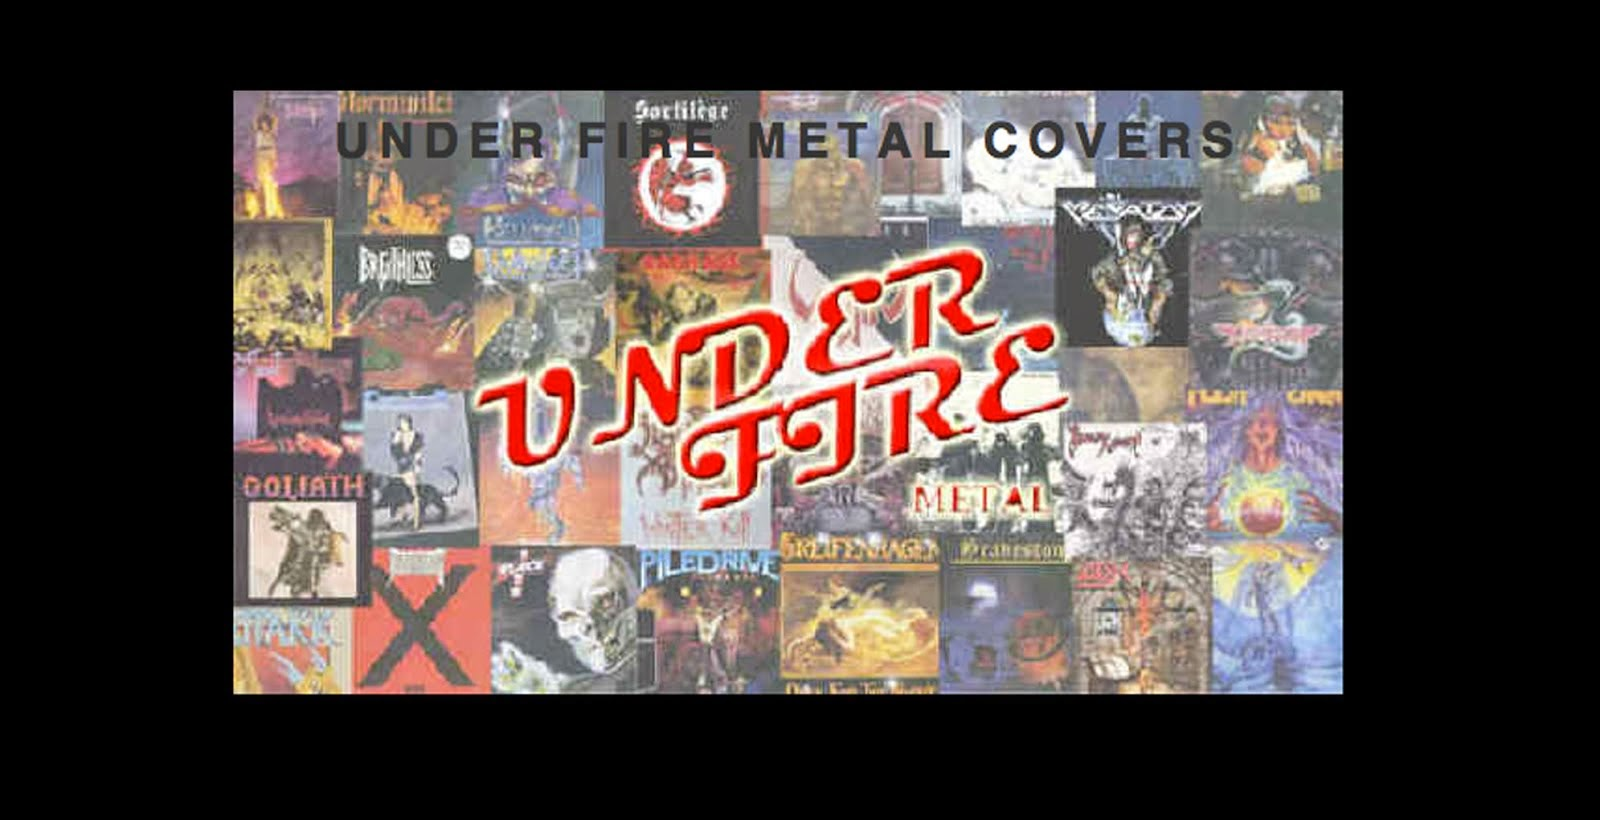 Under Fire Metal Covers